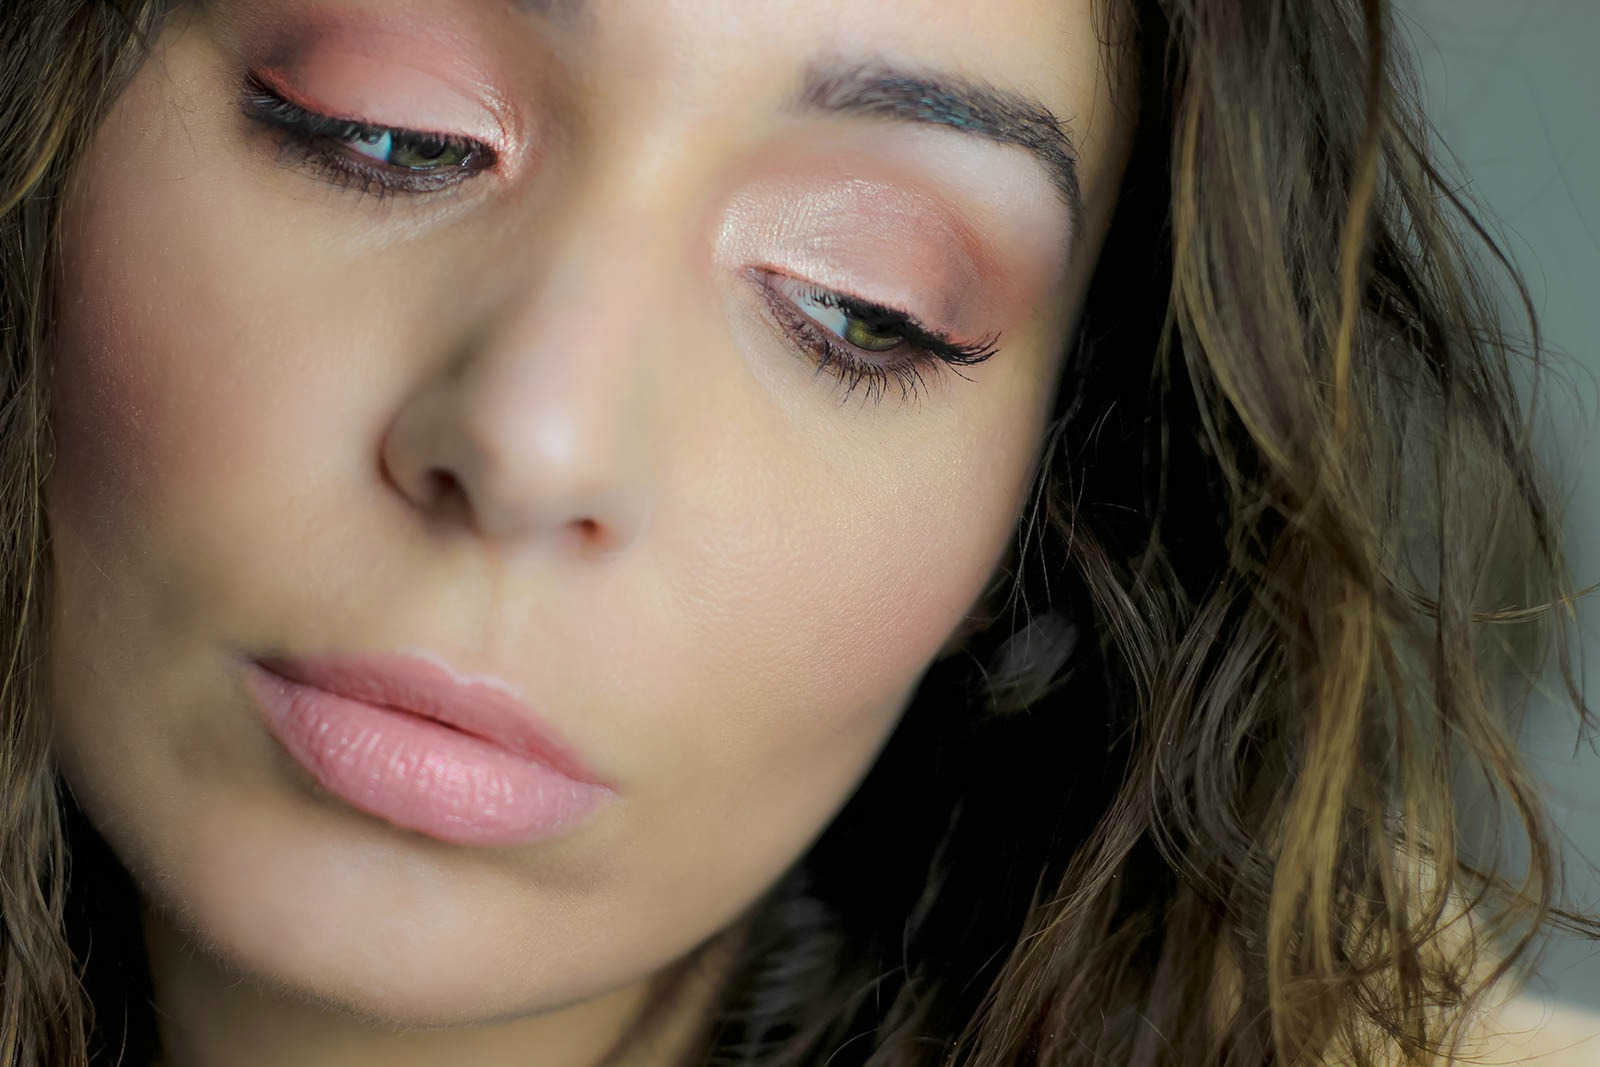 SWEET_PEACH_TOOFACED_makeup-2-2